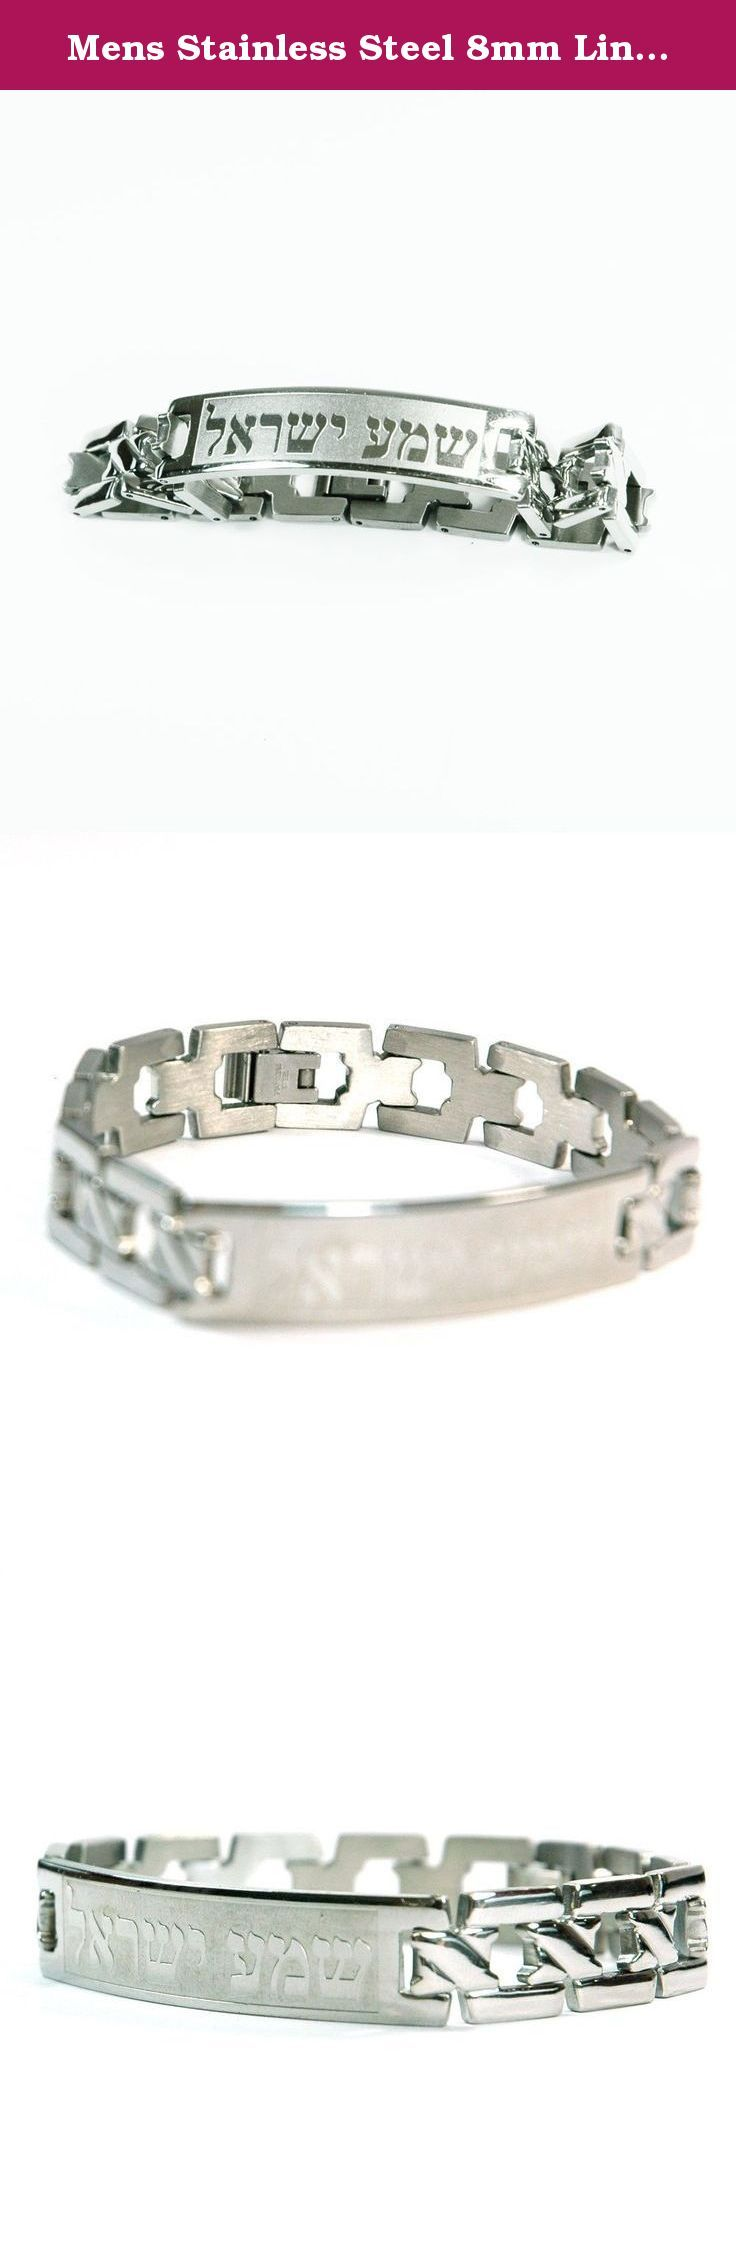 """Mens Stainless Steel 8mm Link ID Bracelet with Shema Yisrael (""""Hear, [O] Israel"""") in Hebrew - 8 Inch Size. A beautiful stainless steel 8 mm wide, link bracelet with the words Shema Yisrael (""""Hear, [O] Israel"""") size 8 inch. The bracelet has a safety latch clasp and is stamped Stainless Steel."""